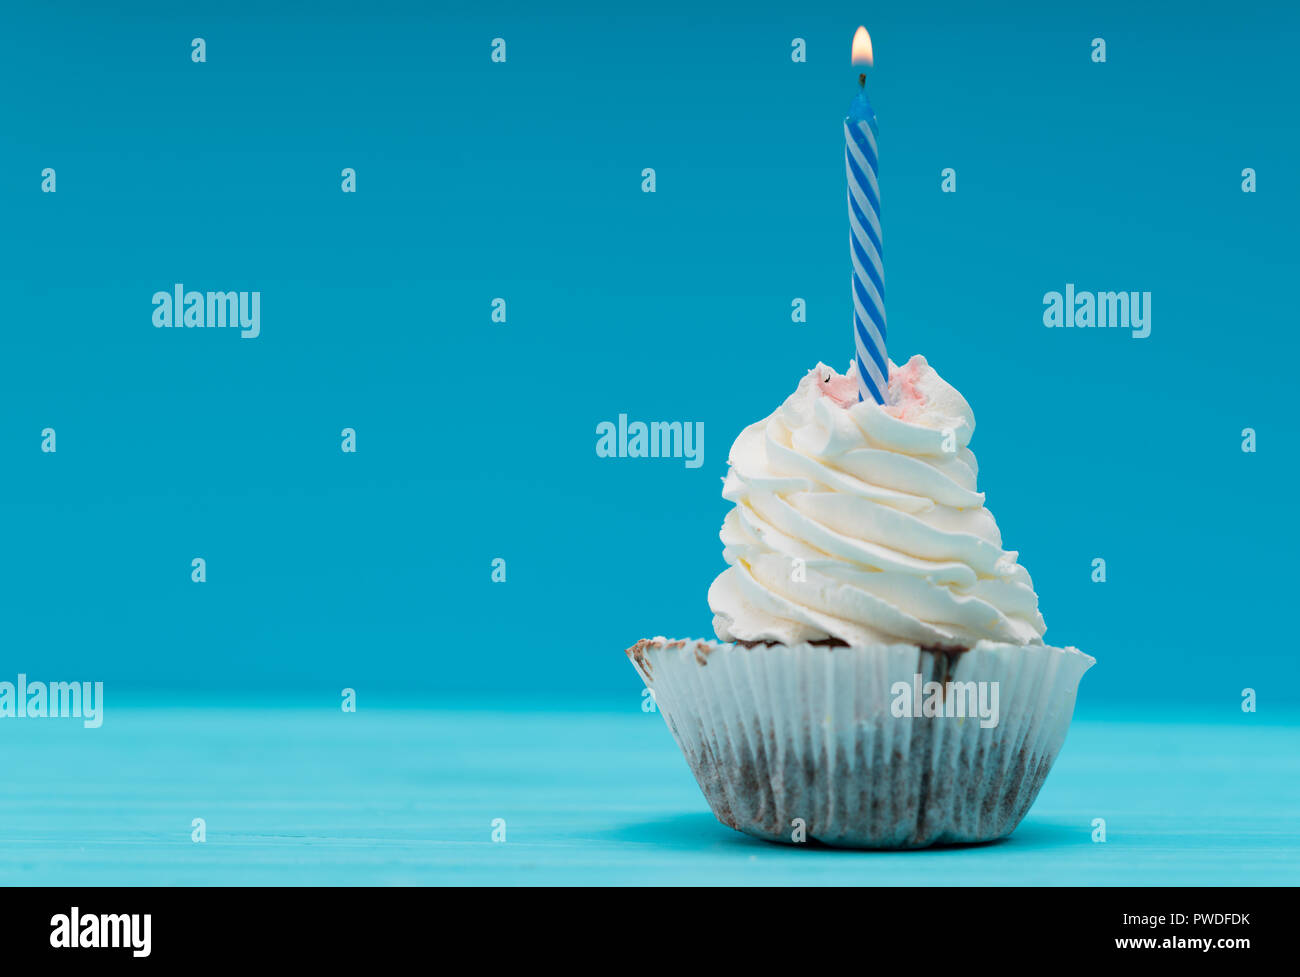 Single cupcake with twirled icing and striped blue party candle in a side view against a blue background with copy space - Stock Image